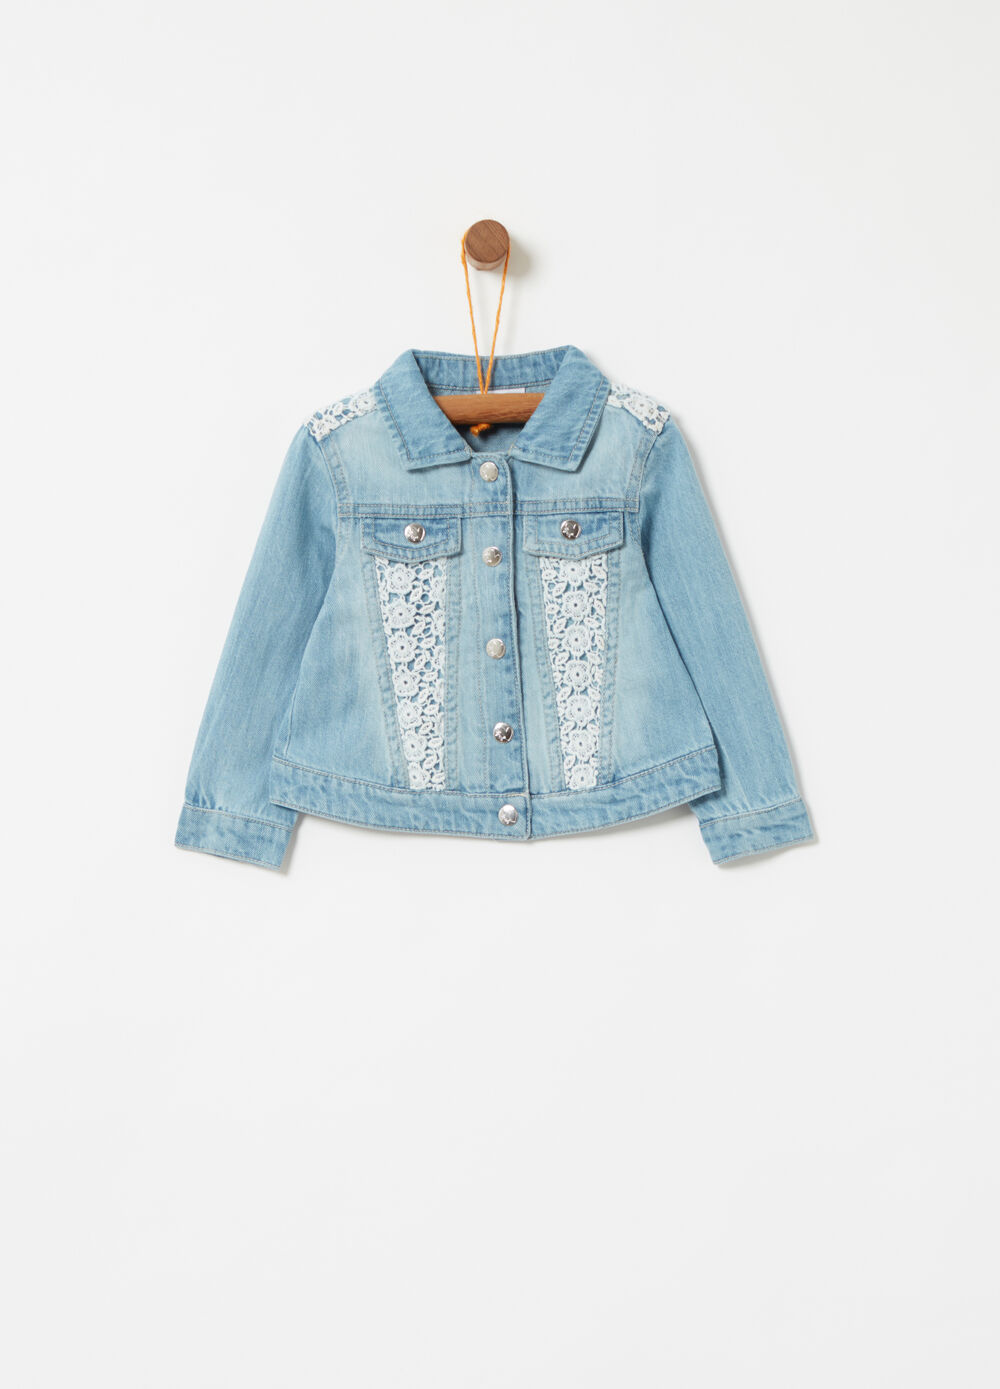 Denim jacket with macramé inserts